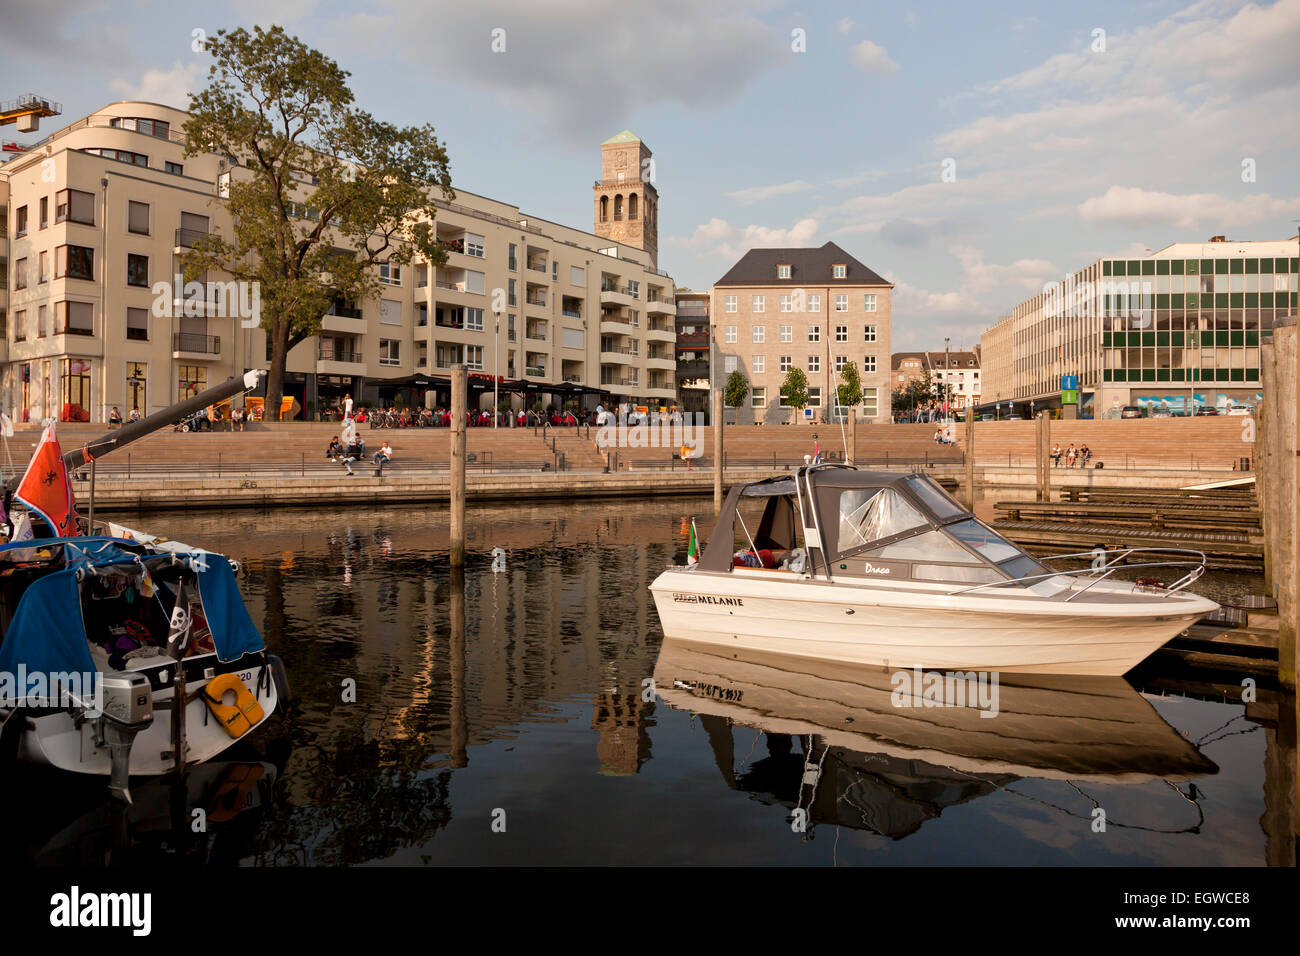 city harbour and town hall tower, Muelheim an der Ruhr, North Rhine-Westphalia, Germany, Europe - Stock Image